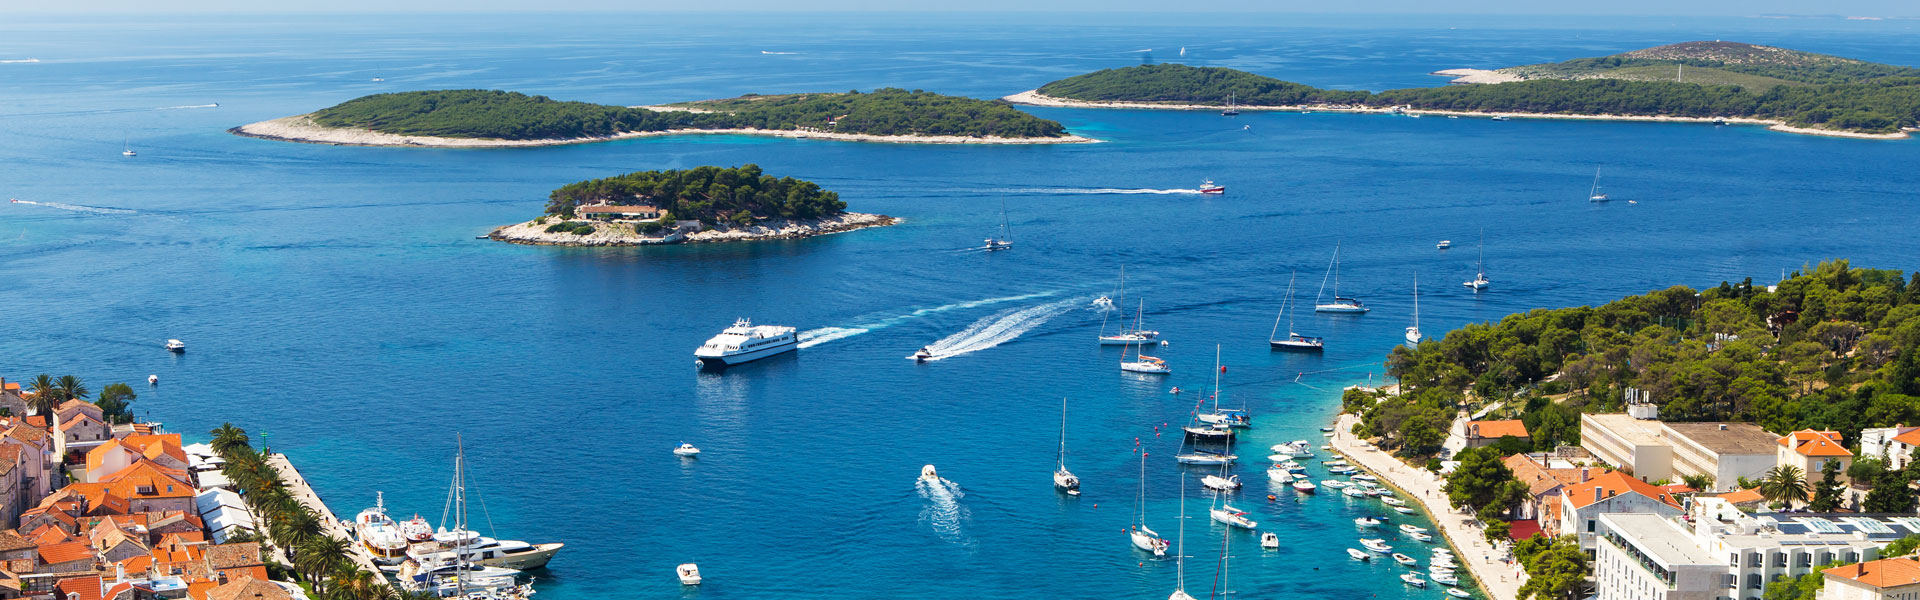 itinerary boat trips dubrovnik